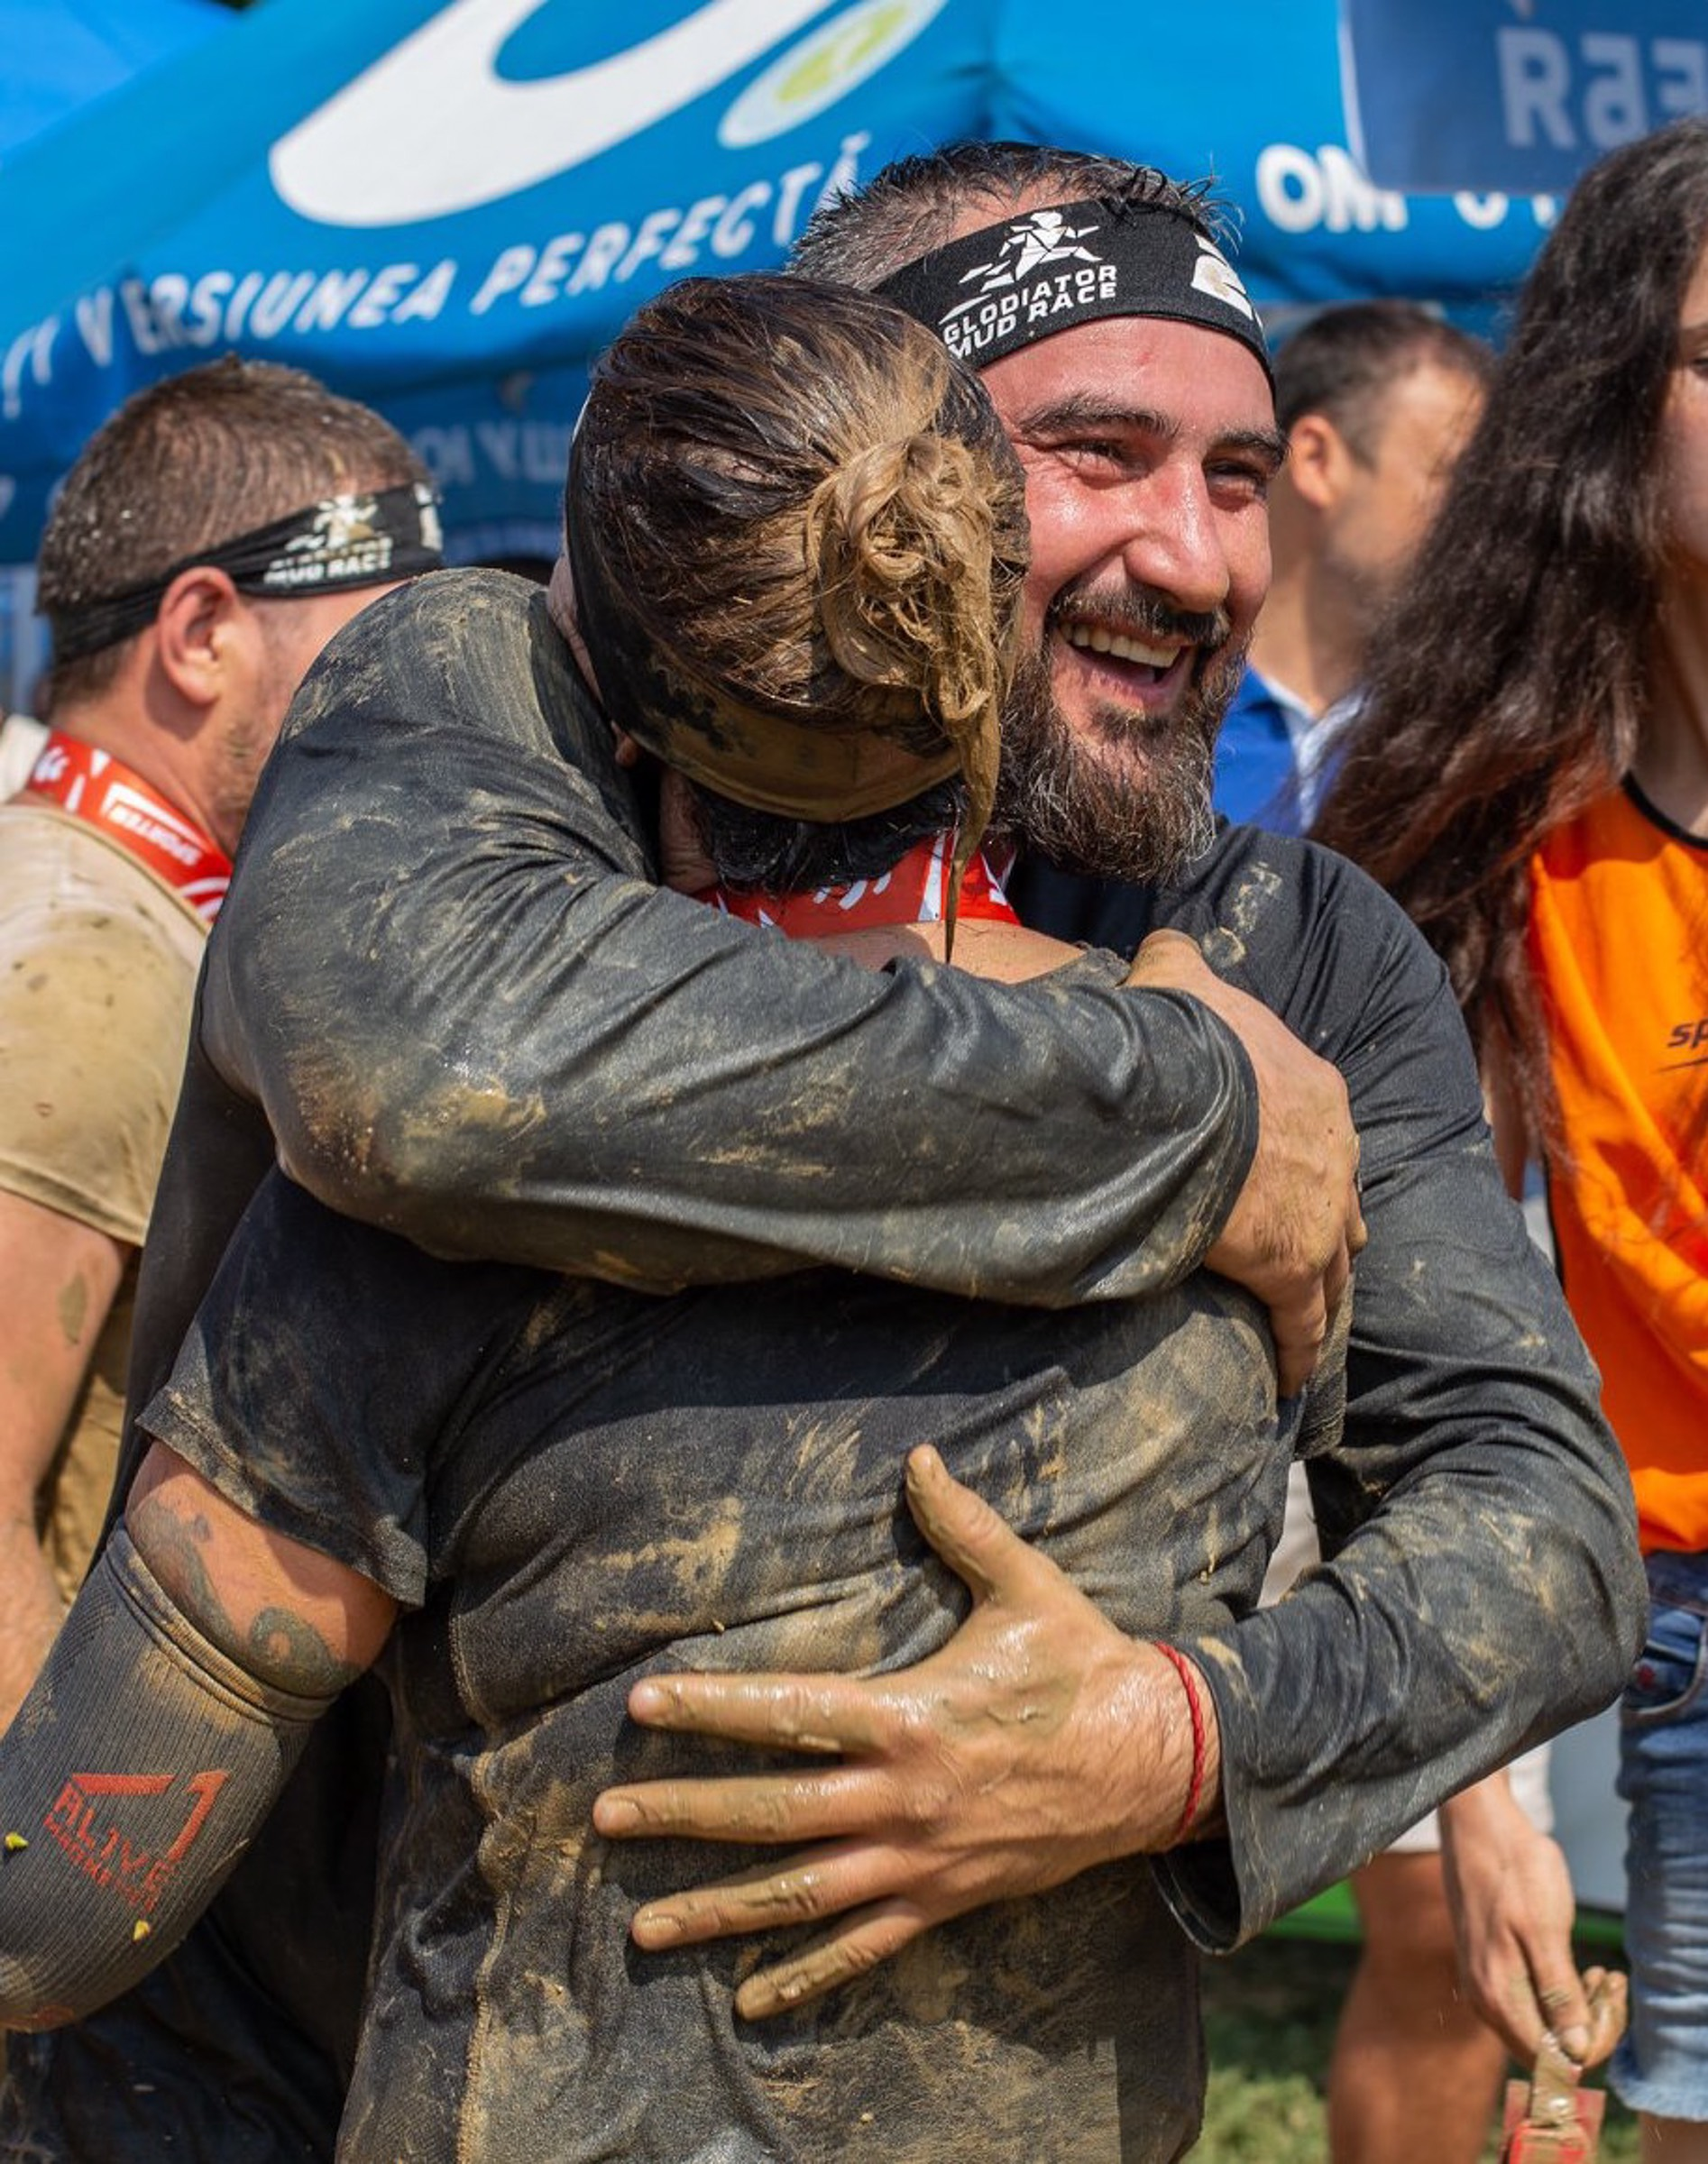 Sorry, that mud run orgies confirm. happens